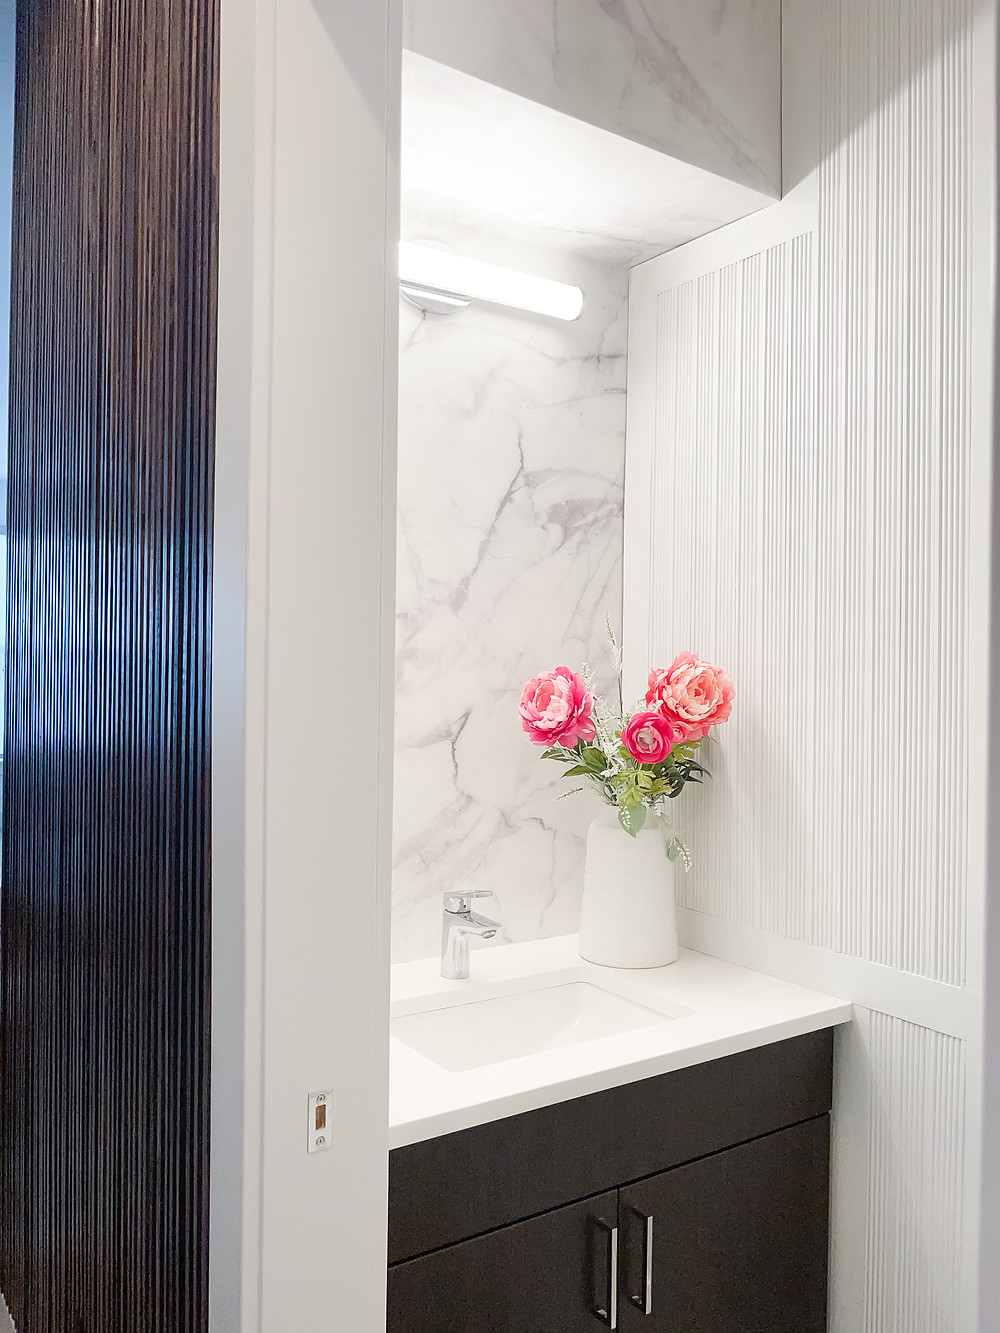 Modern Powder Room Reveal with a fluted accent wall, marble wallpaper and gray paint to create the perfect bathroom oasis. A stunning DIY powder room makeover with beautiful millwork.